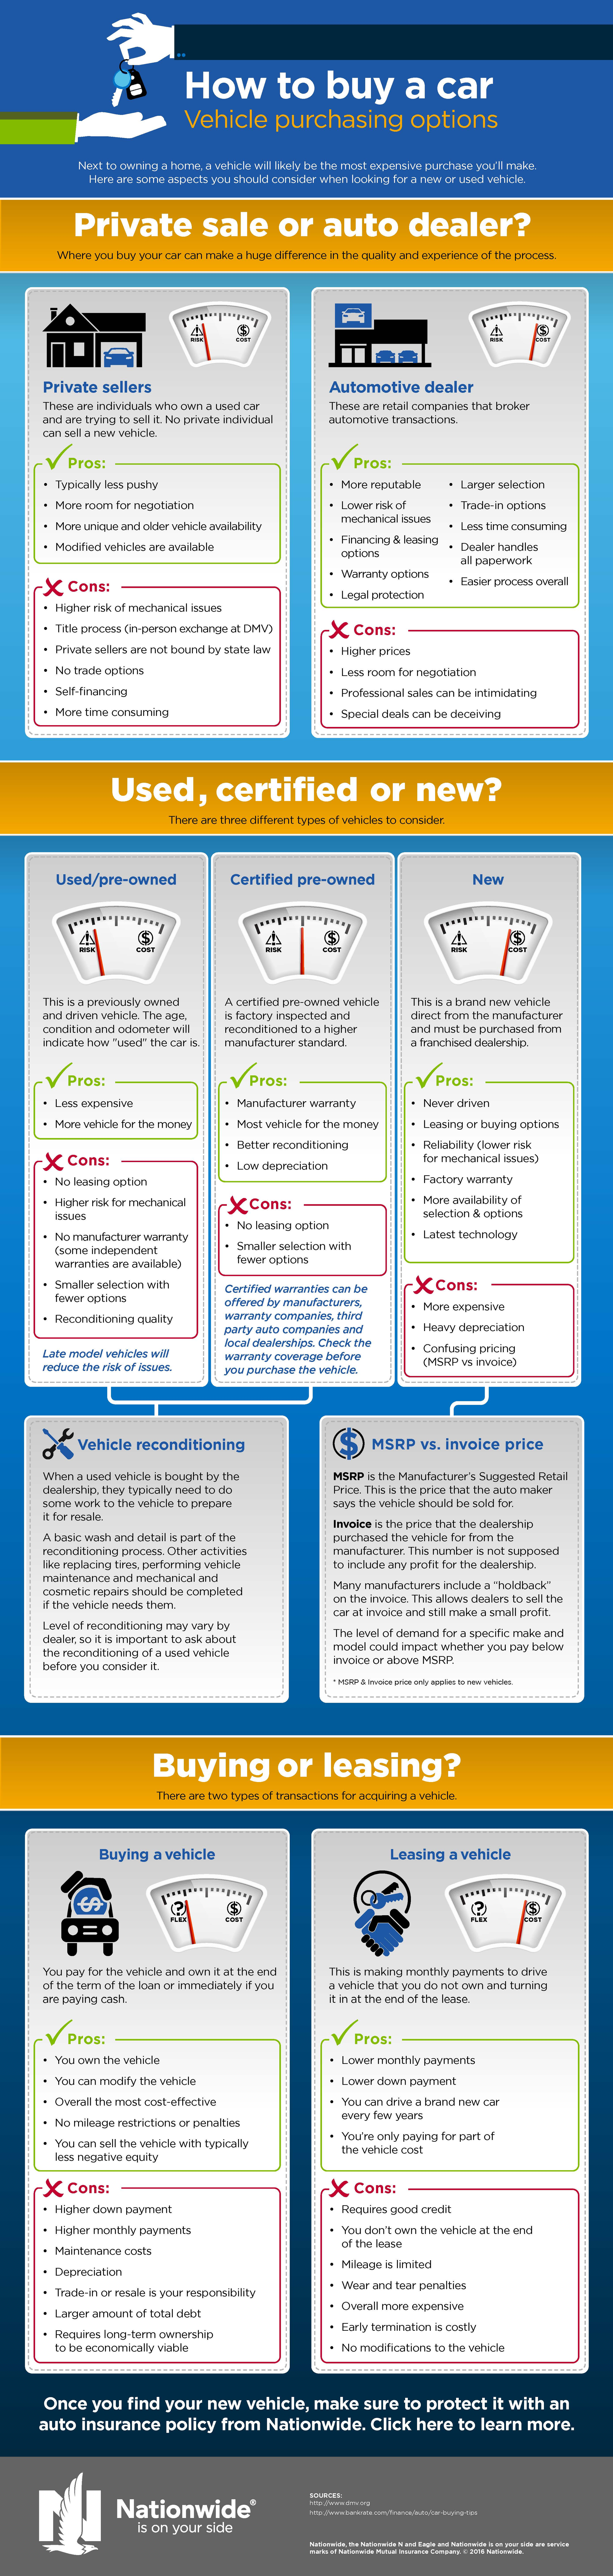 Car Buying Process: Vehicle Purchasing Options [Infographic]